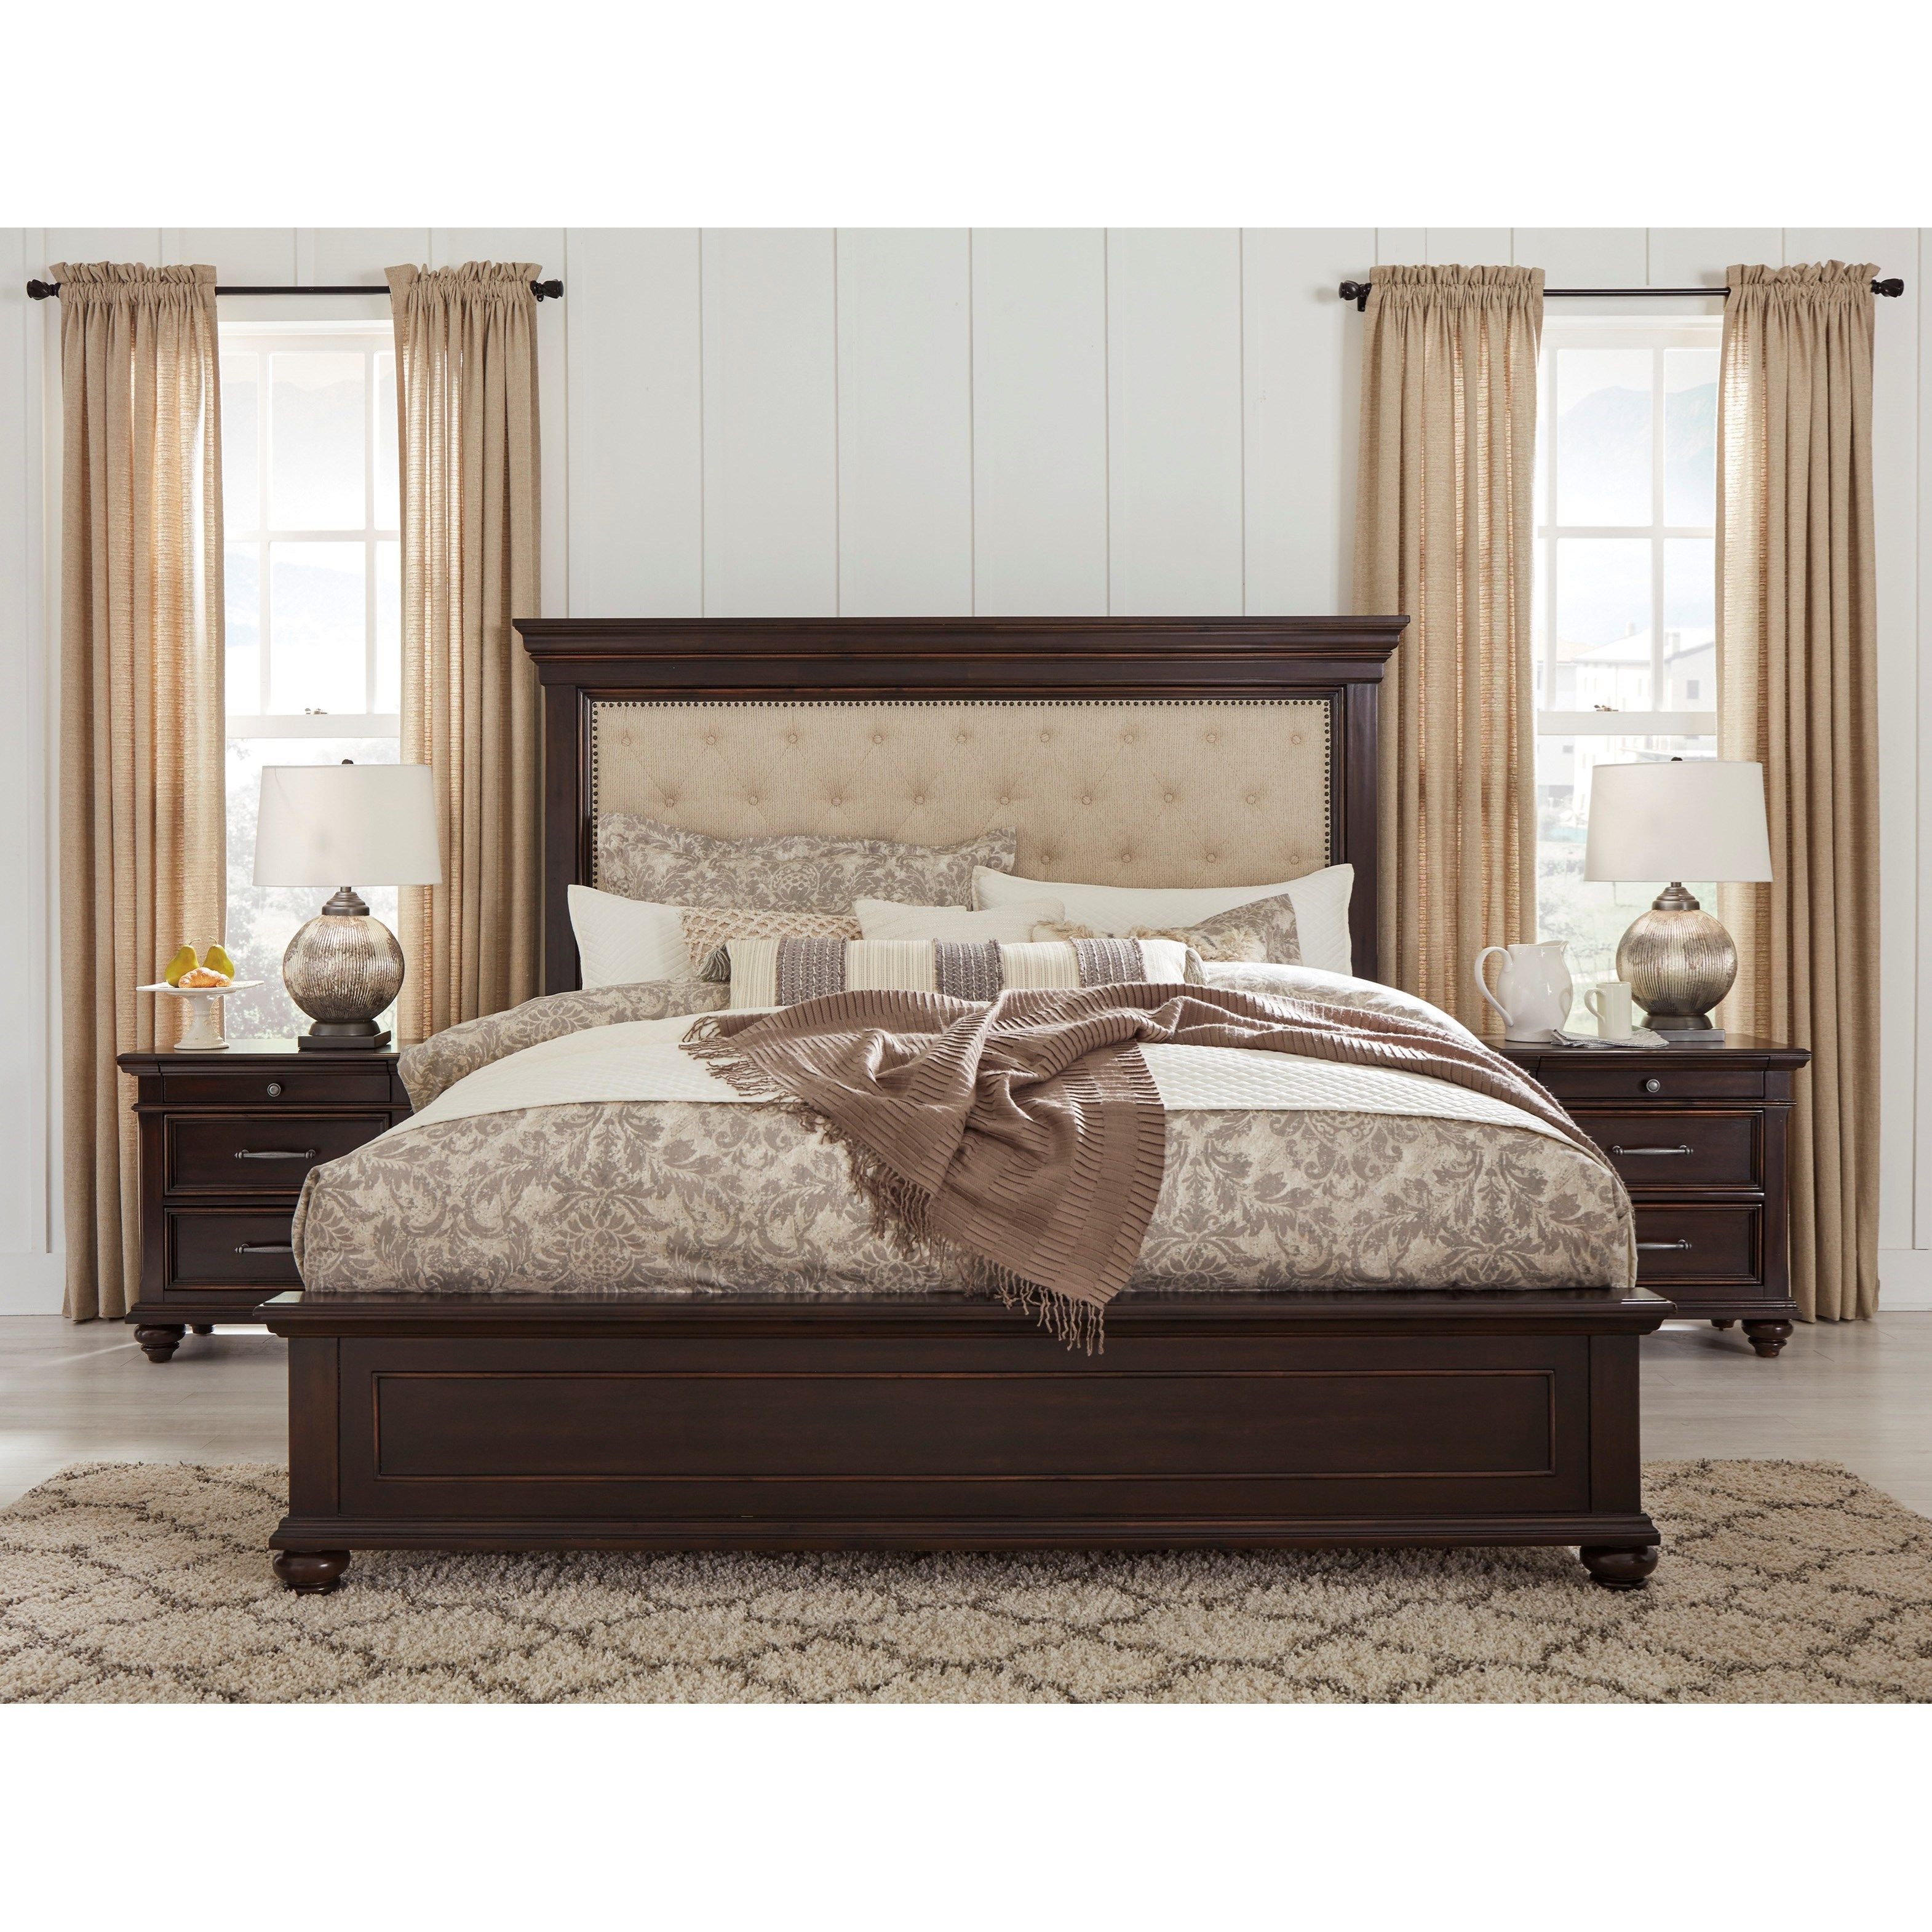 Signature Design By Ashley Willowton Queen Bedroom Group: Signature Design By Ashley Brynhurst Queen Bedroom Group